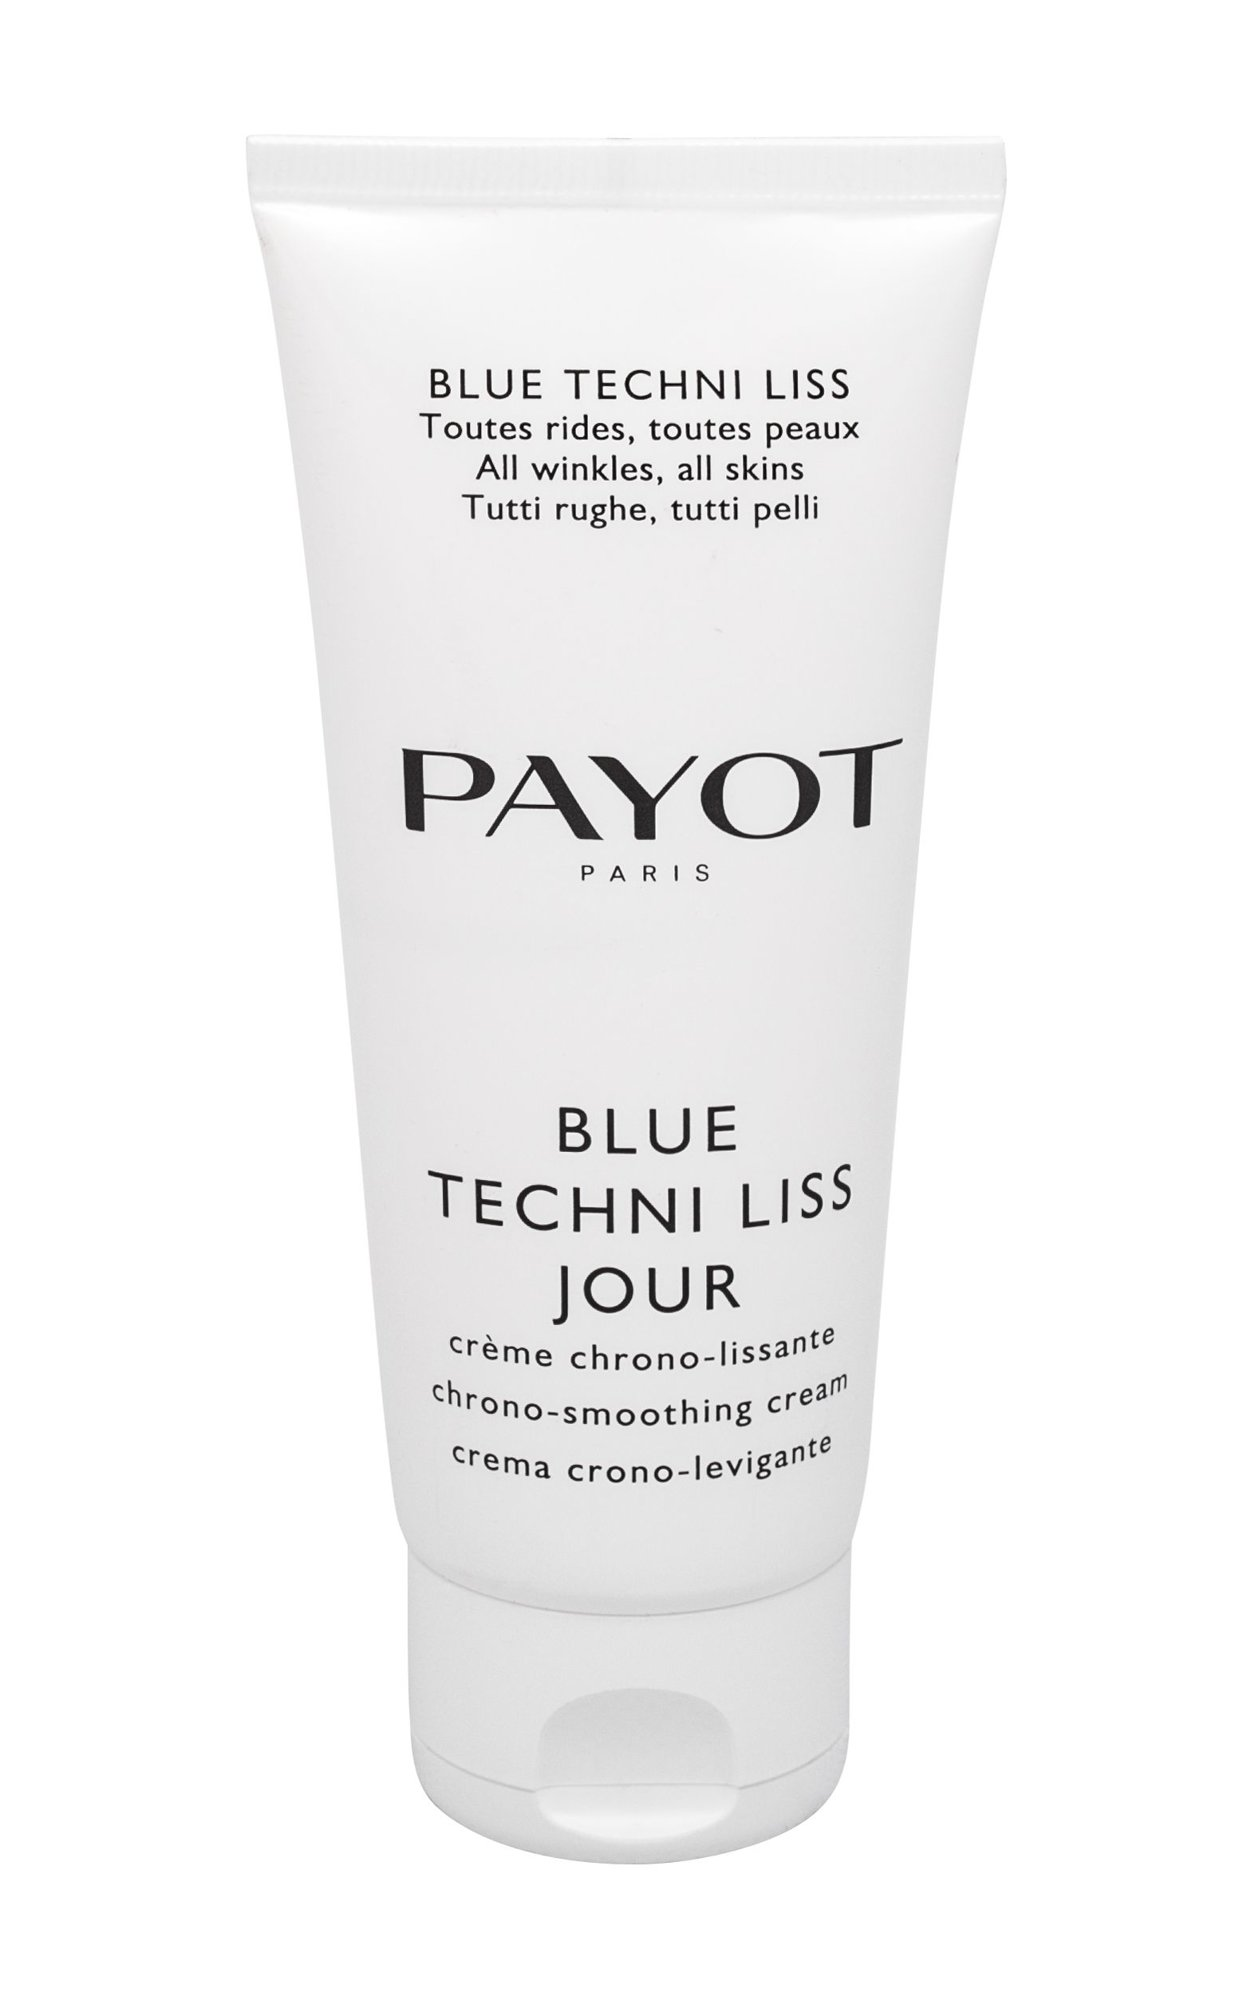 PAYOT Blue Techni Liss Day Cream 100ml